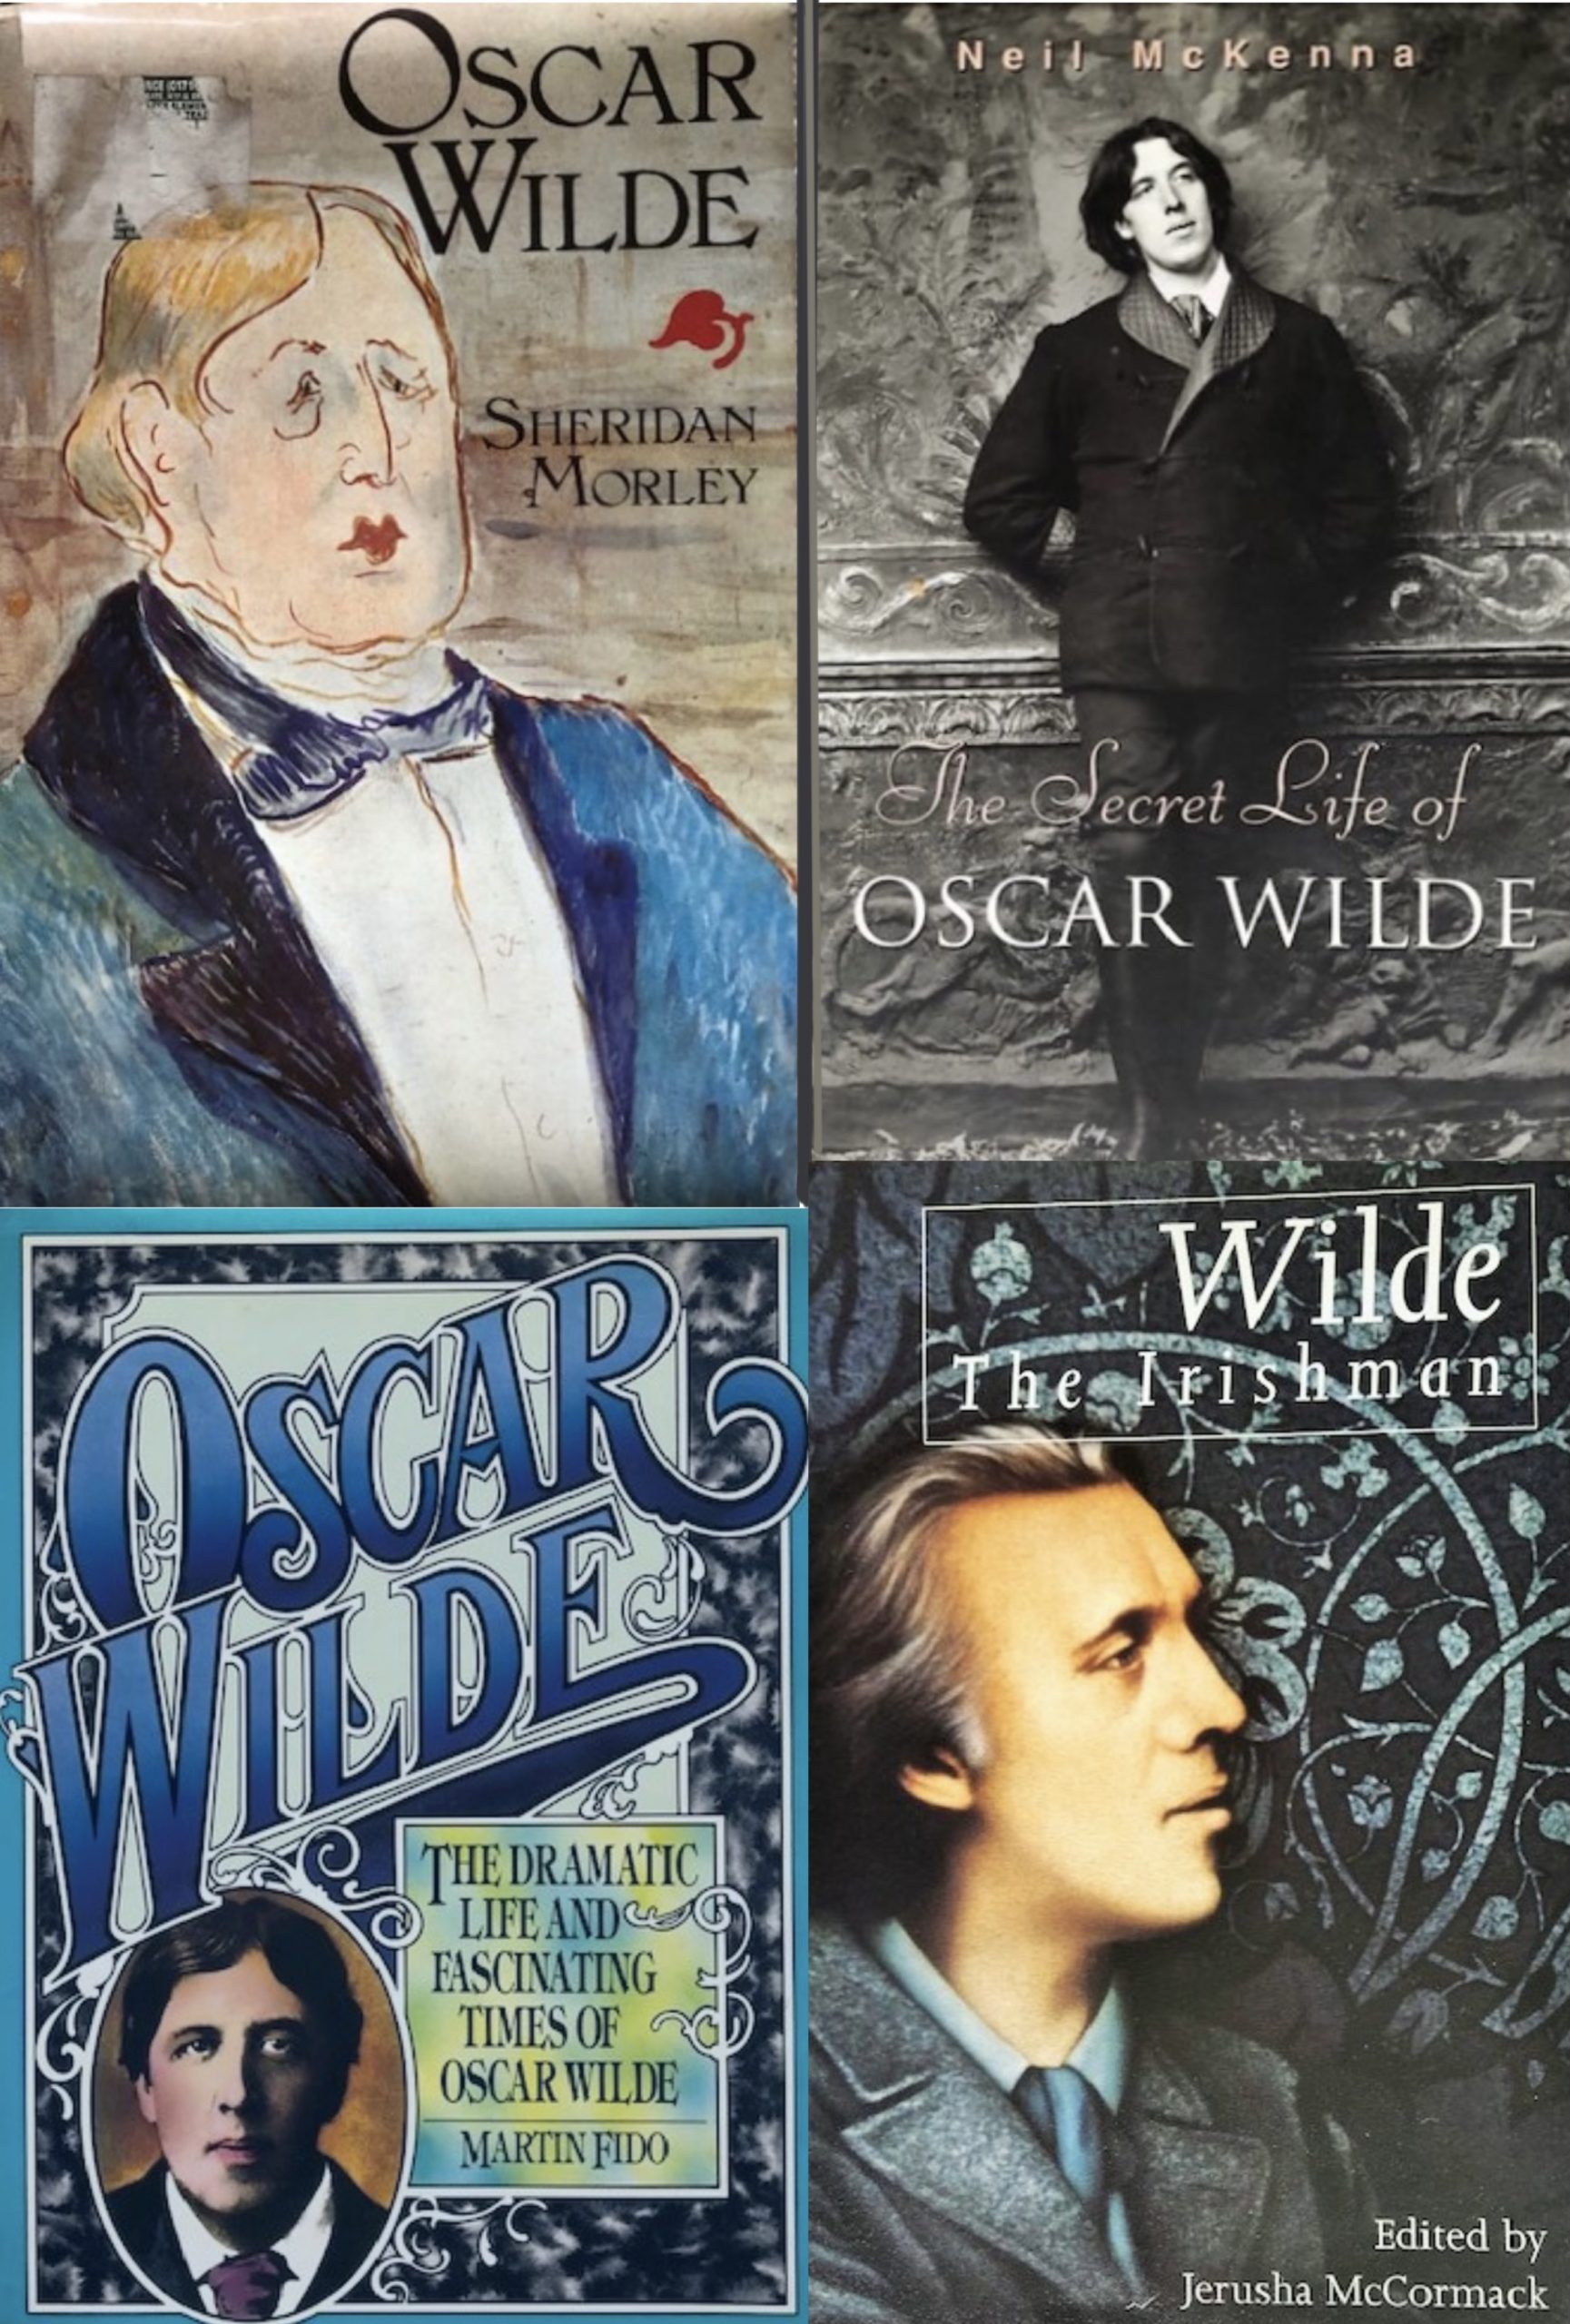 Books for sale from the Oscar Wilde Society